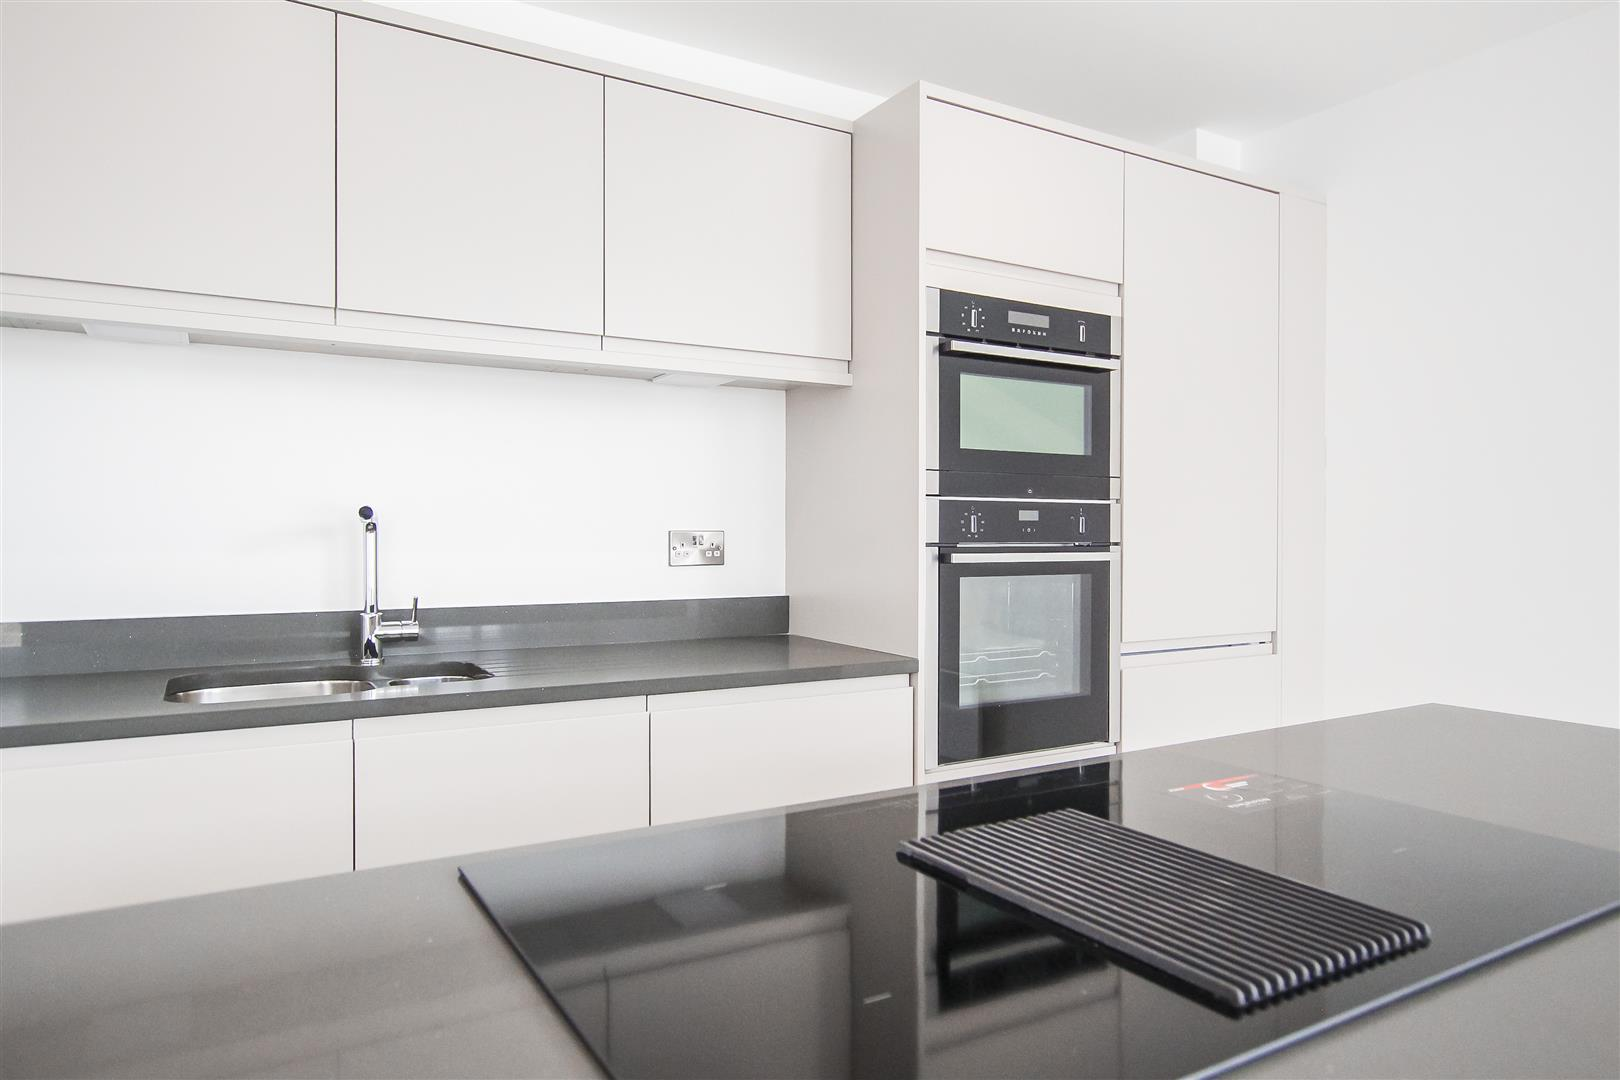 2 Bedroom Apartment For Sale - Image 15